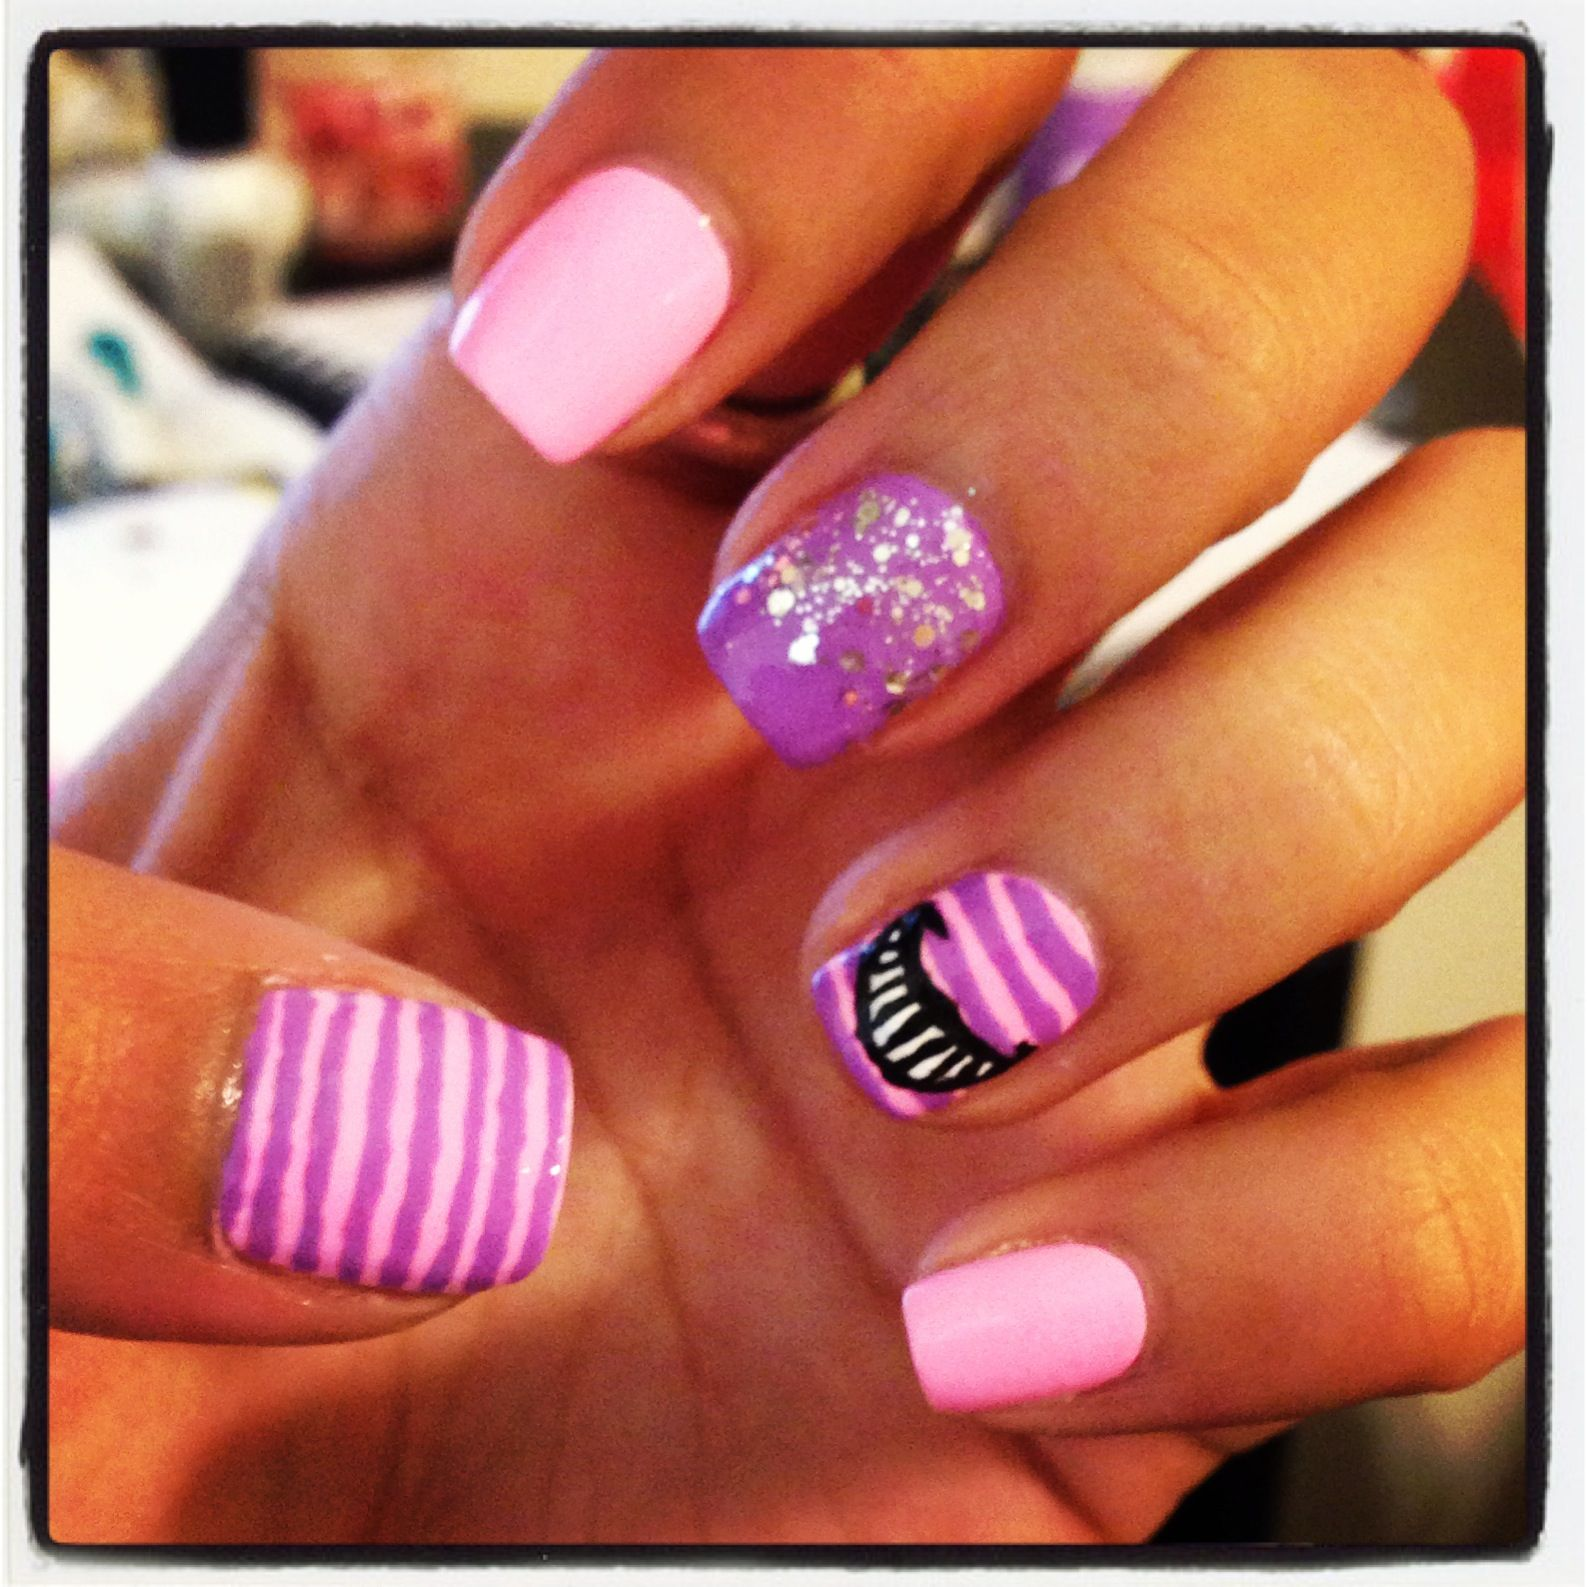 Cheshire Cat nail art! I love love love these!!! So cute and girly ...